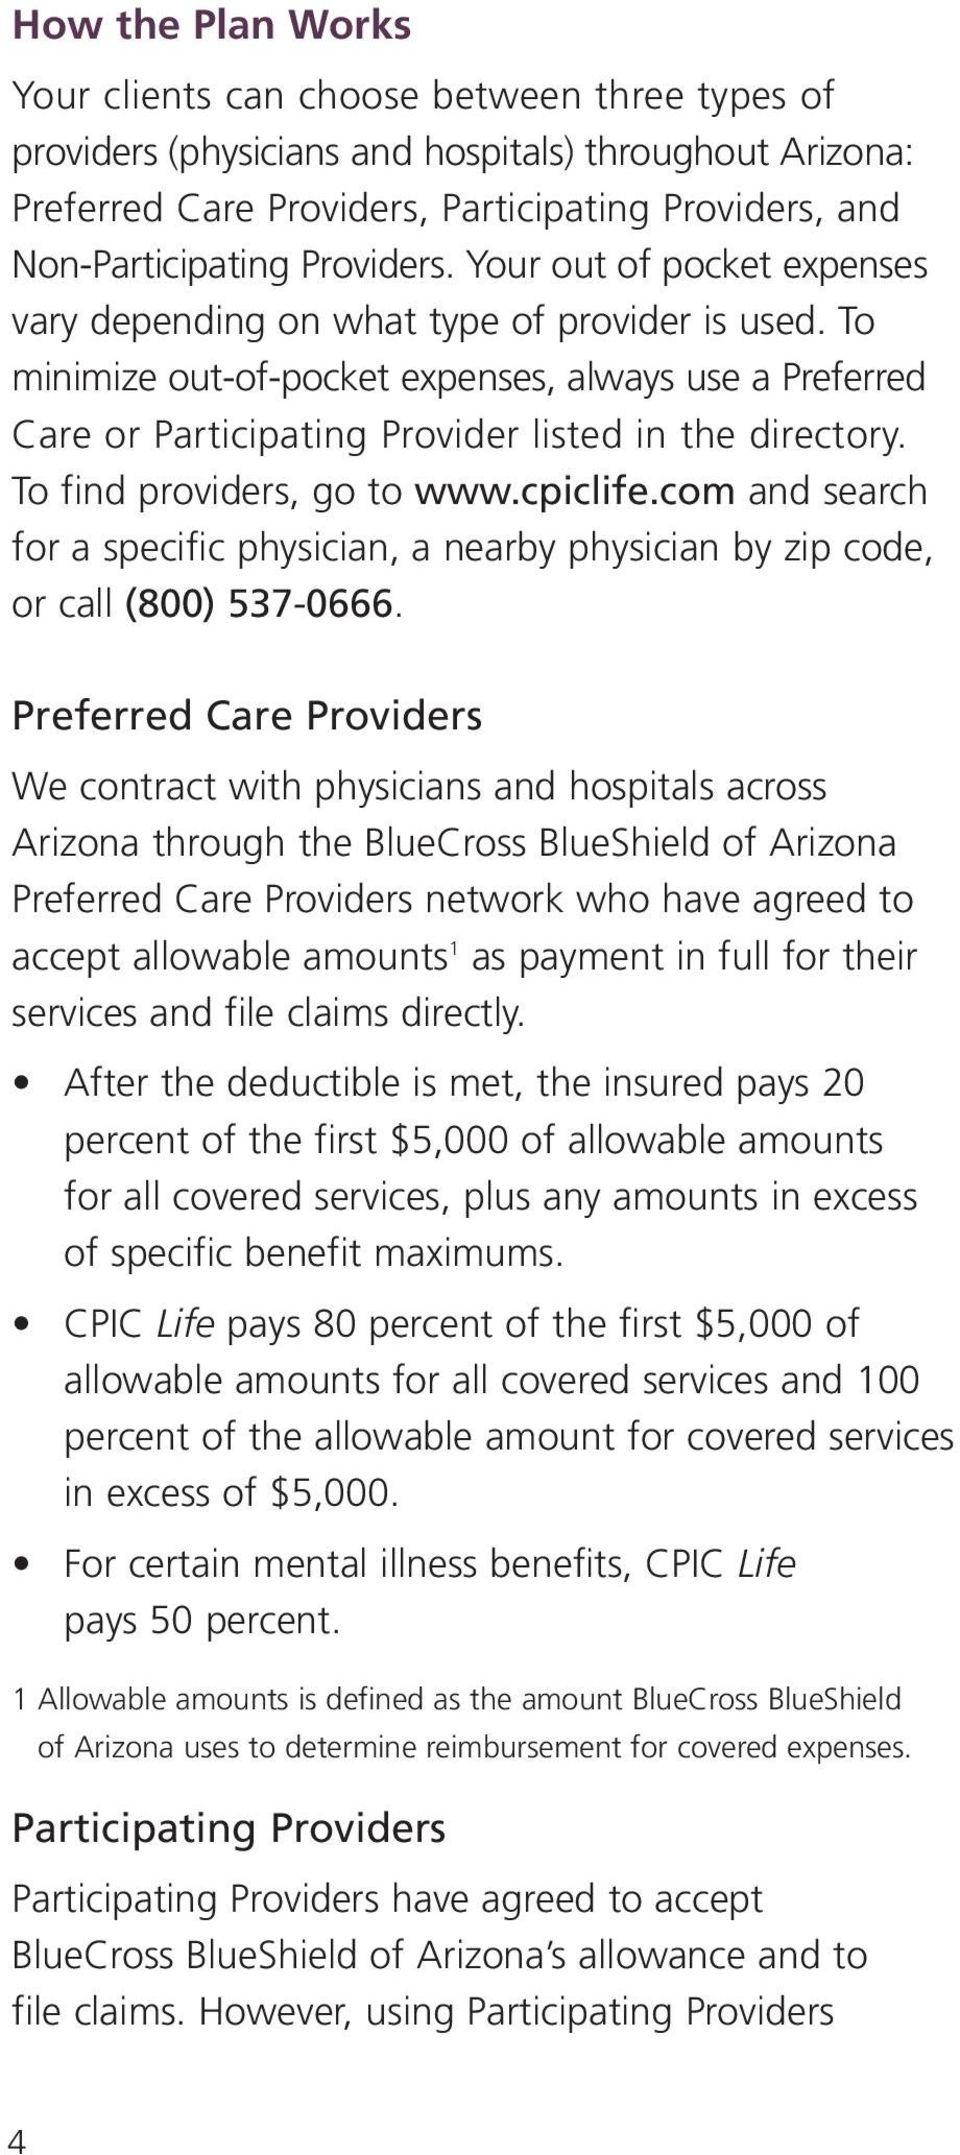 To minimize out-of-pocket expenses, always use a Preferred Care or Participating Provider listed in the directory. To find providers, go to www.cpiclife.